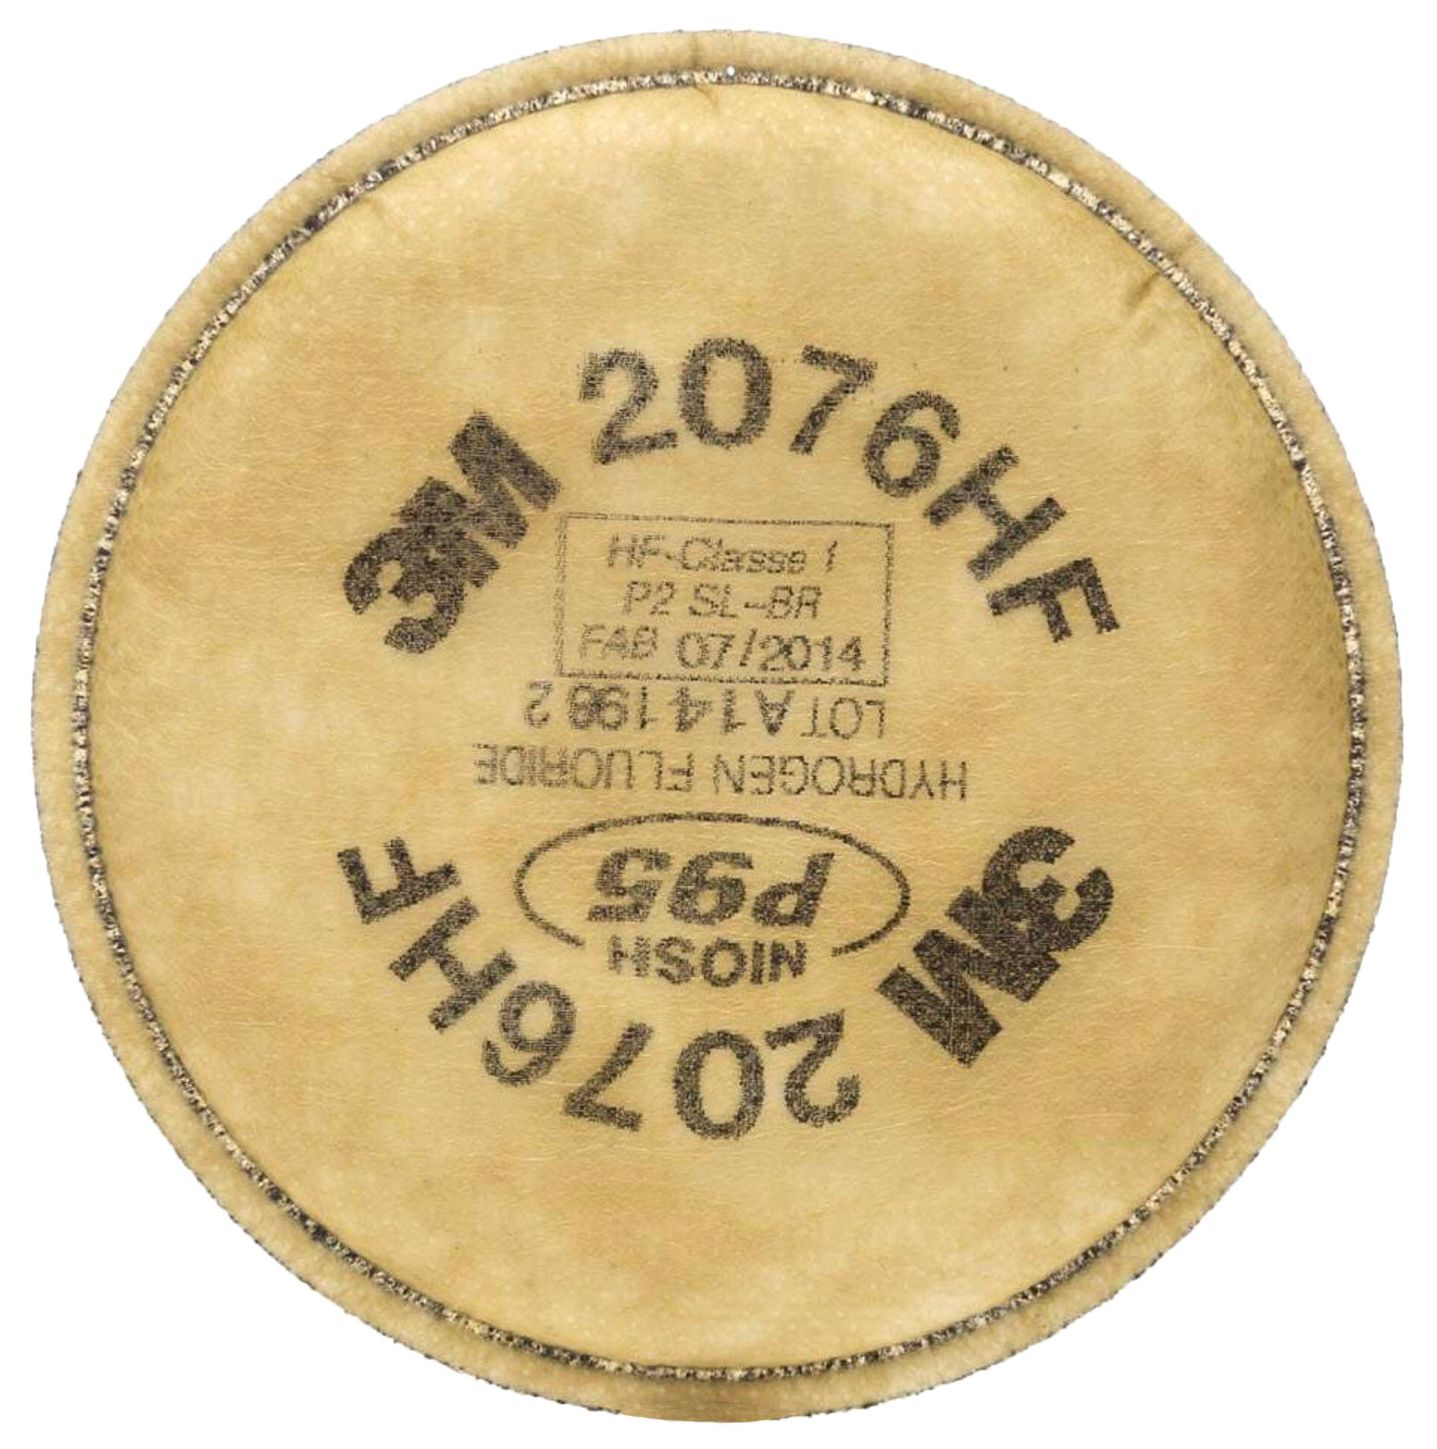 3m-2076hf-series-particulate-filters-p95-acid-gas-fluoride-relief-front.jpg